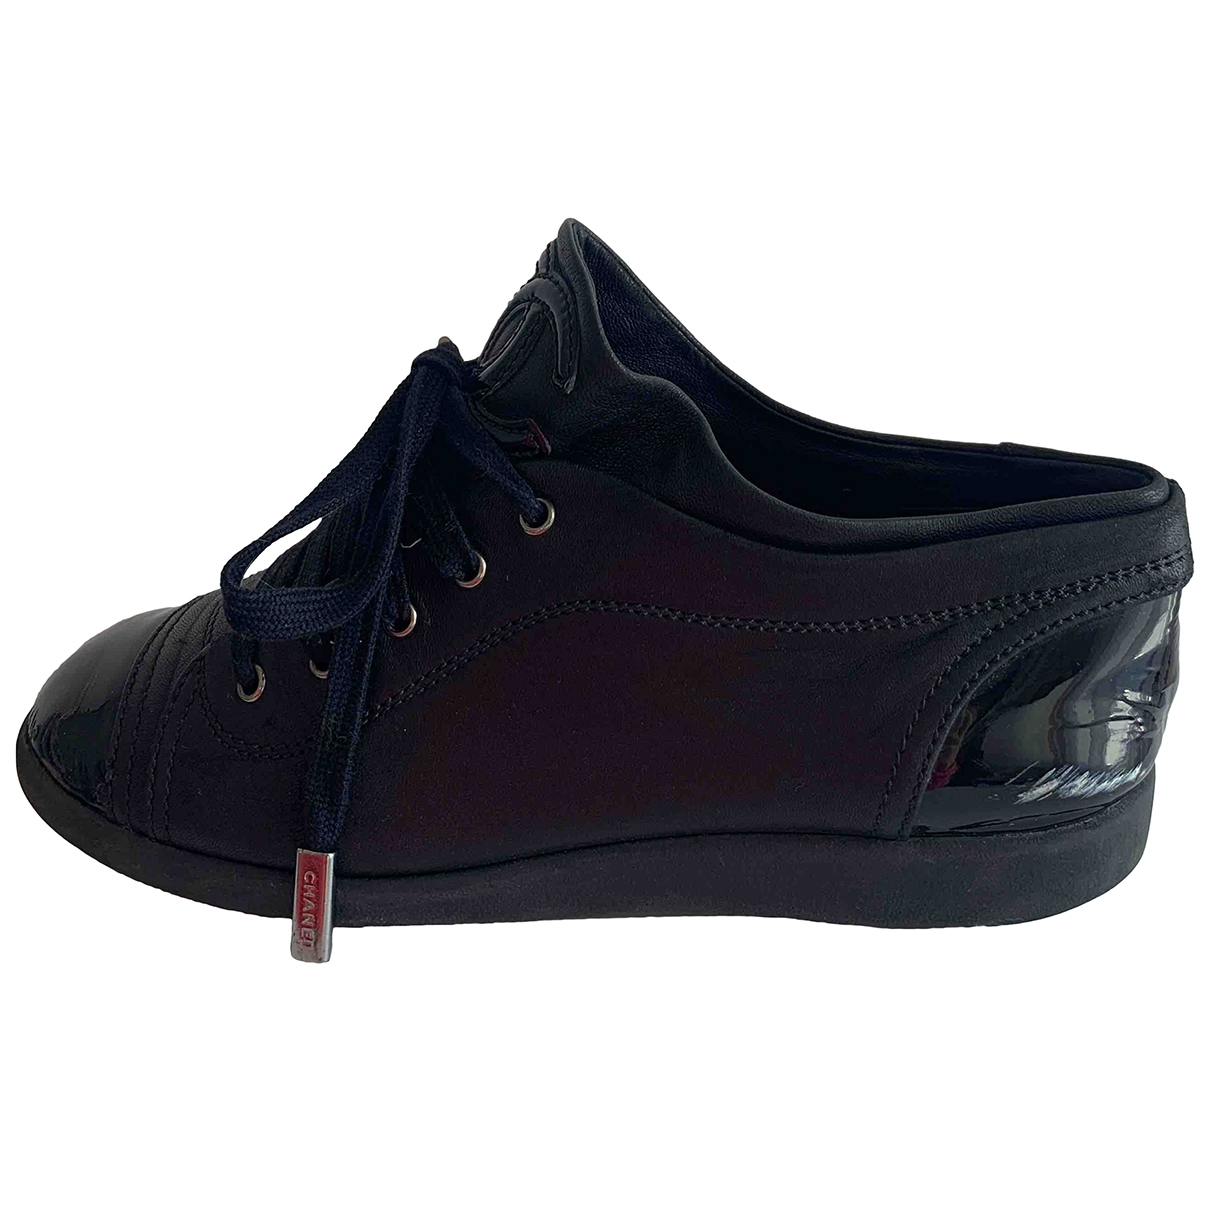 Chanel \N Black Patent leather Trainers for Women 37 EU